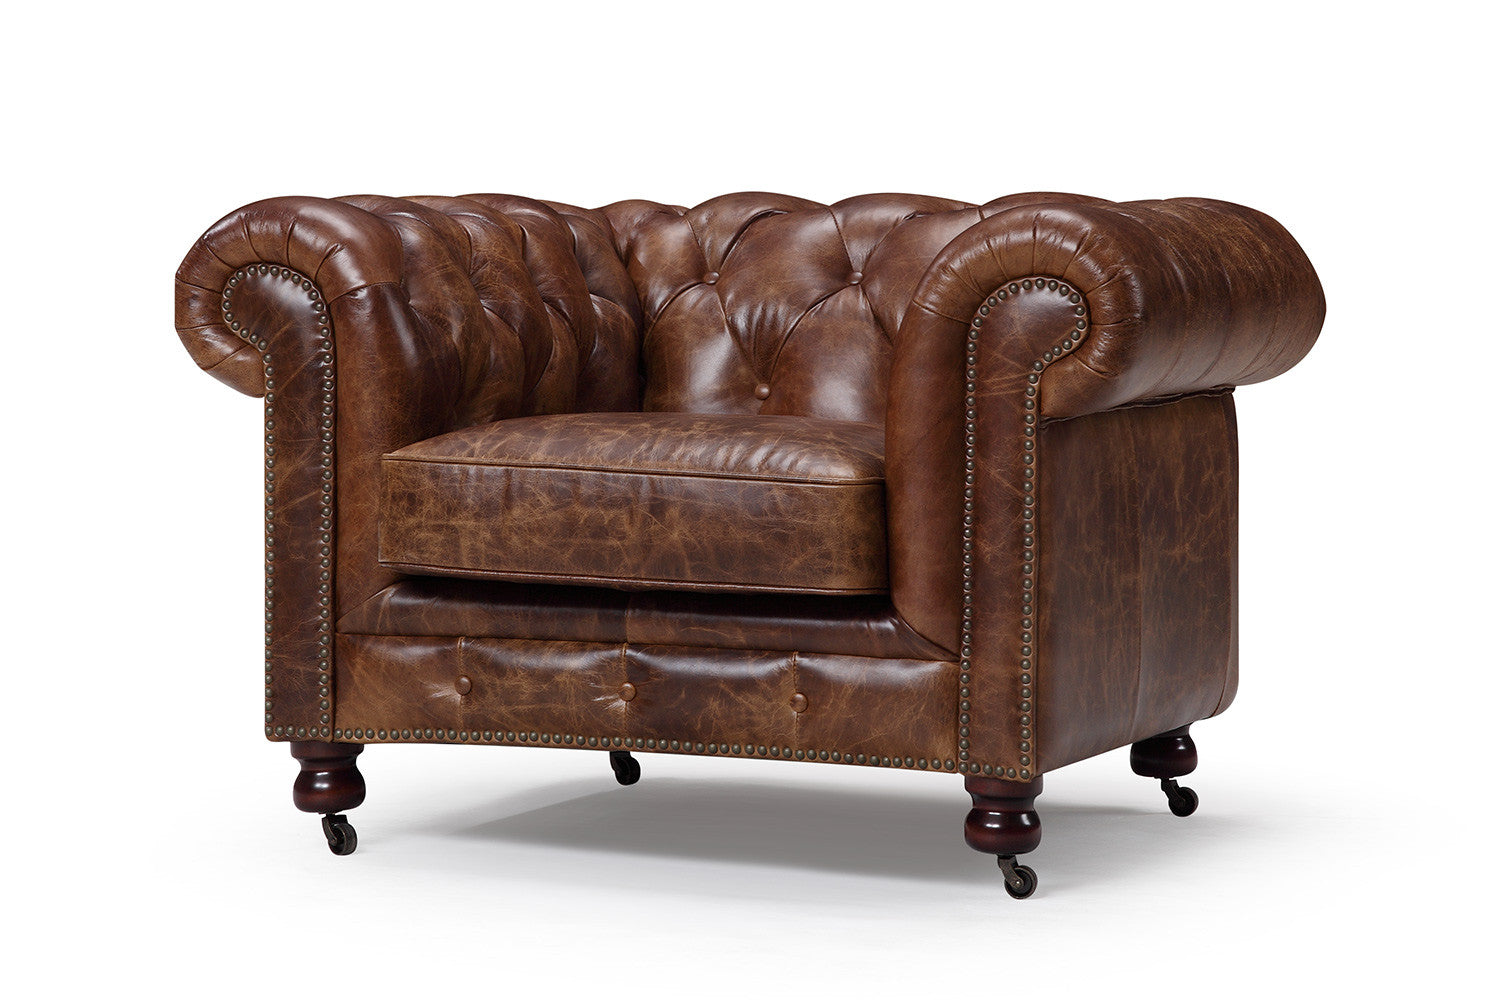 the kensington chesterfield tufted chair rose and moore. Black Bedroom Furniture Sets. Home Design Ideas